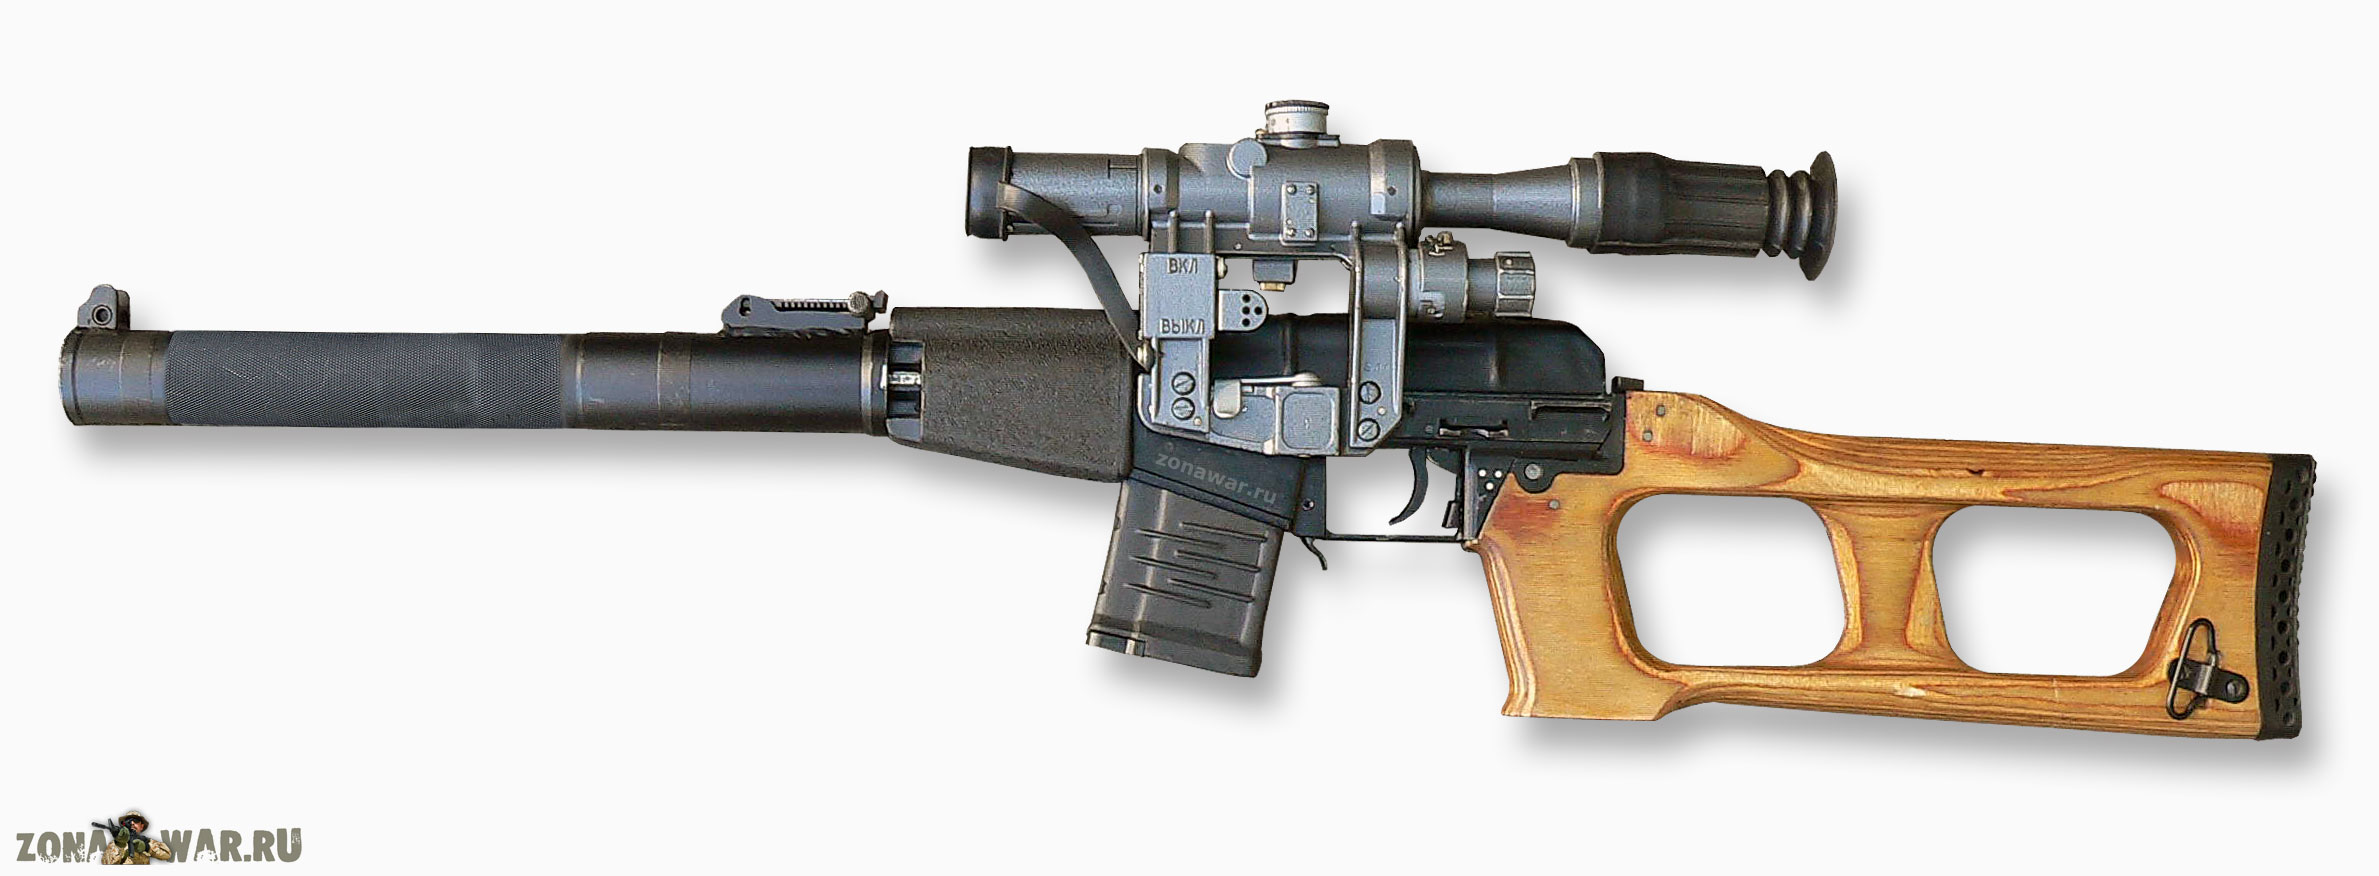 U S  And Russian Sniper Rifles - Overview